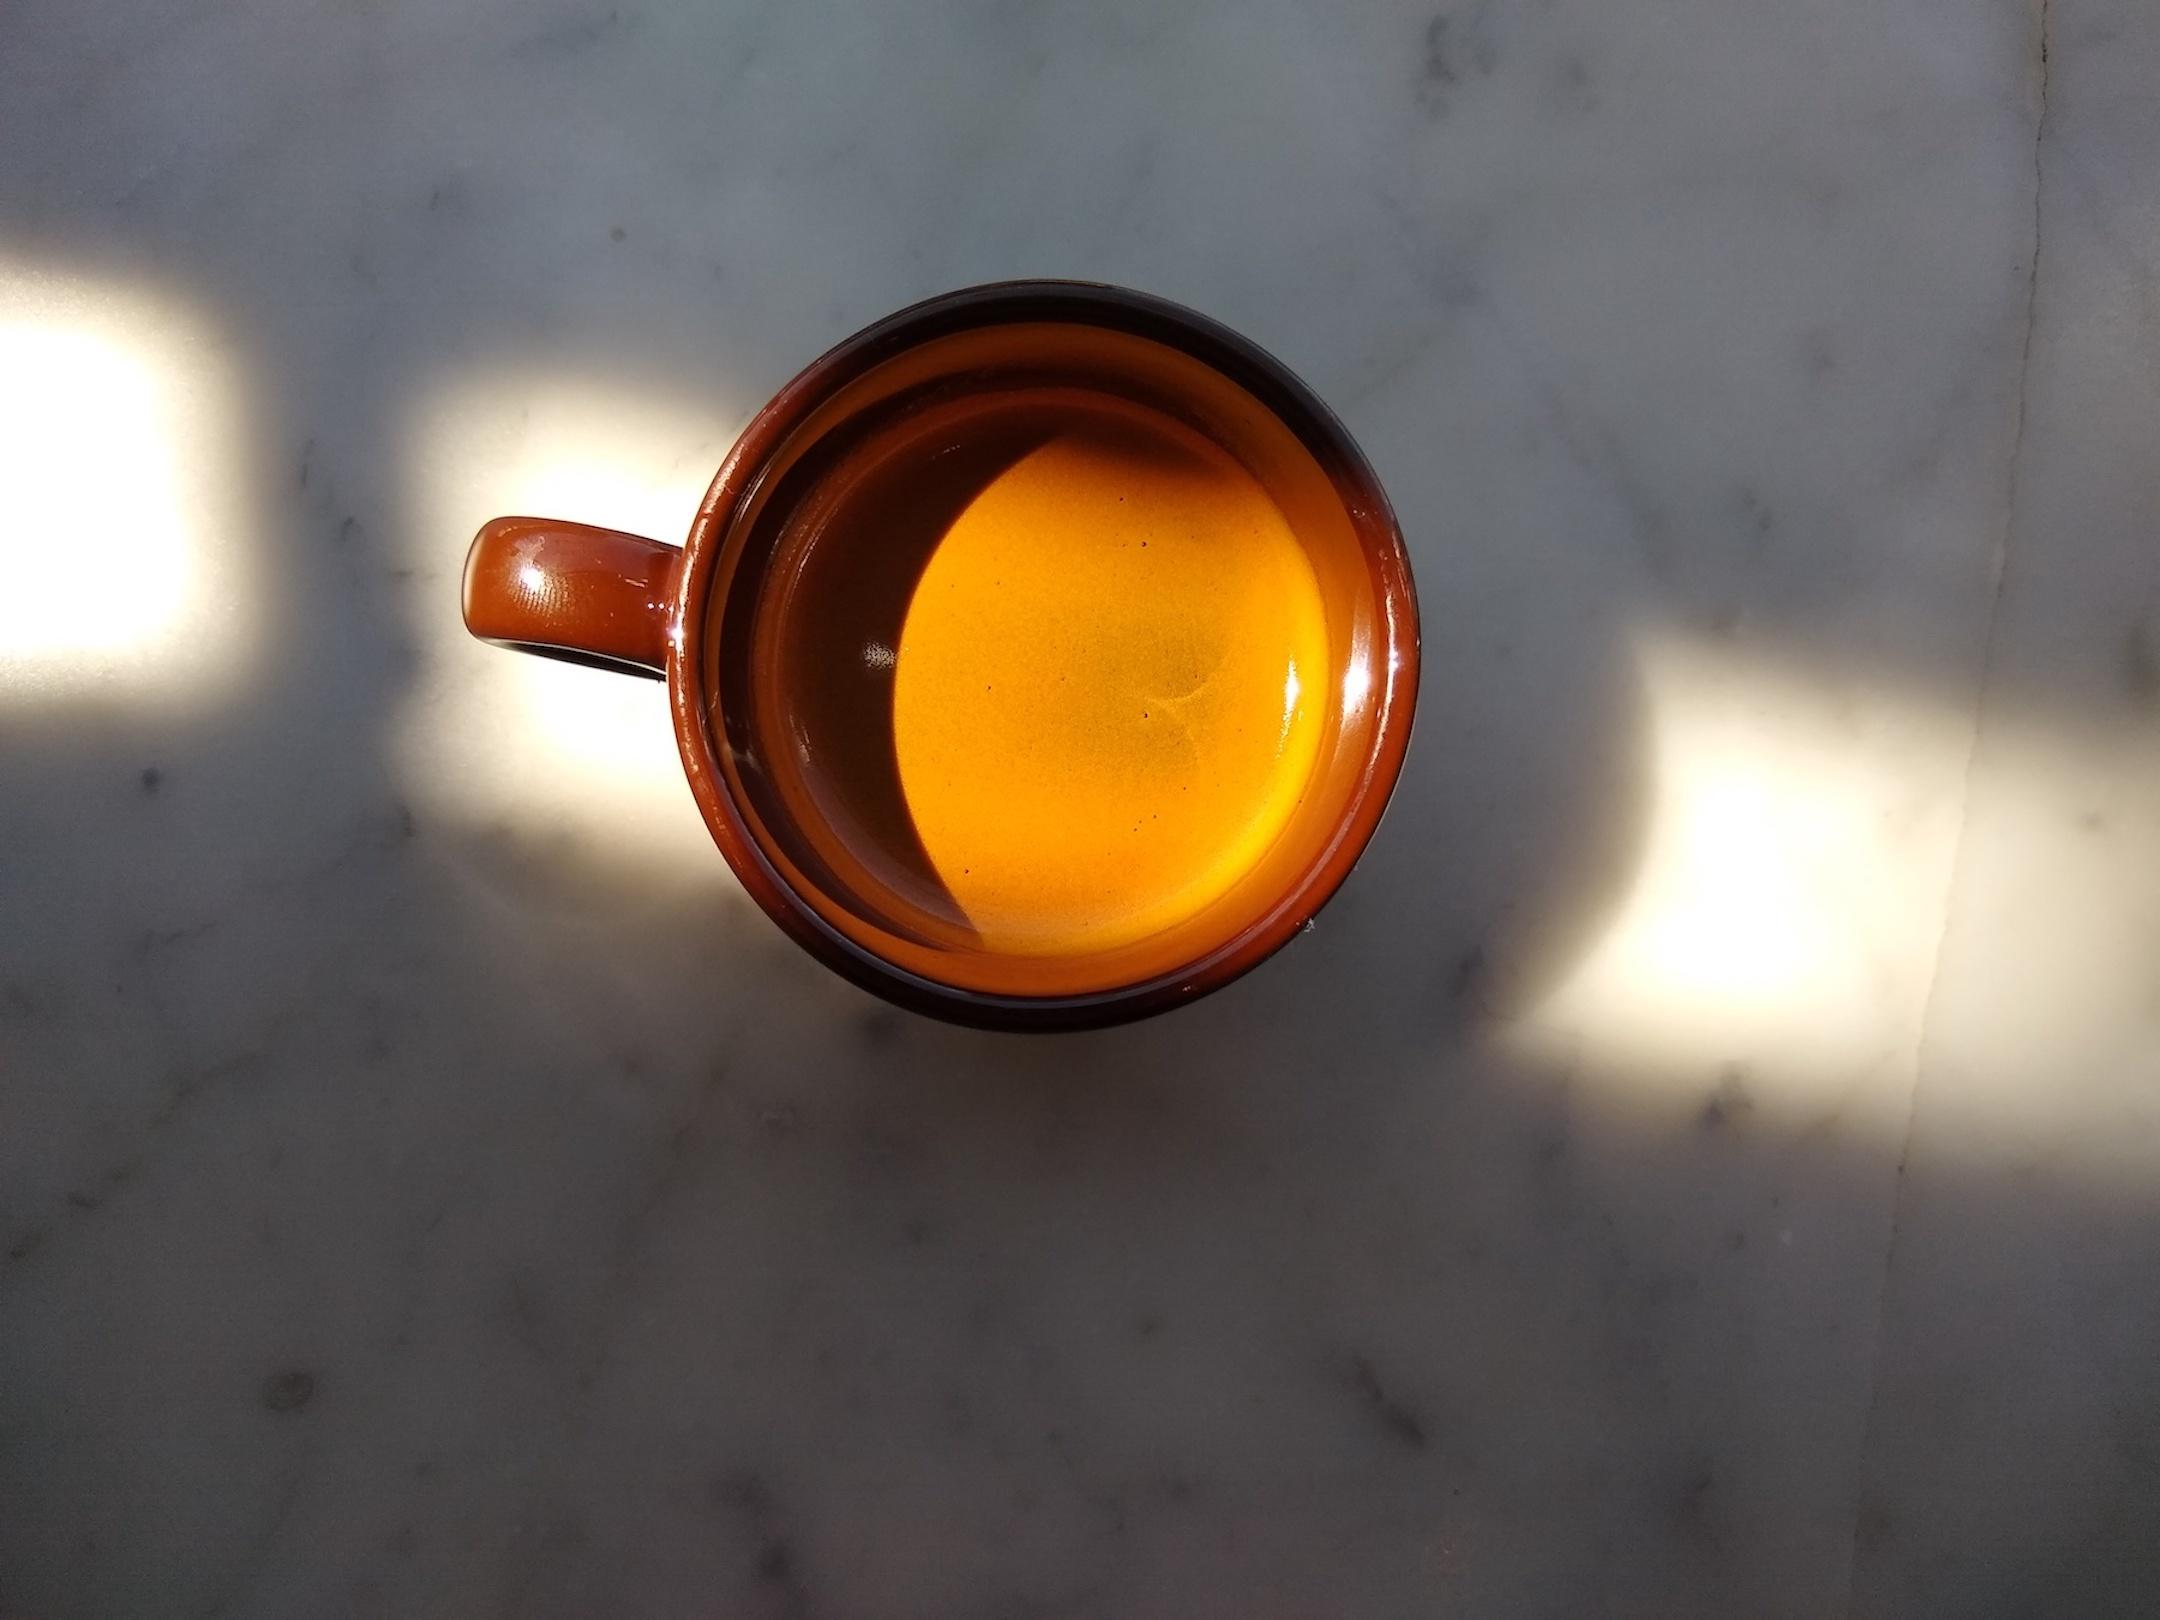 small-good-photo-espresso-in-sunlight